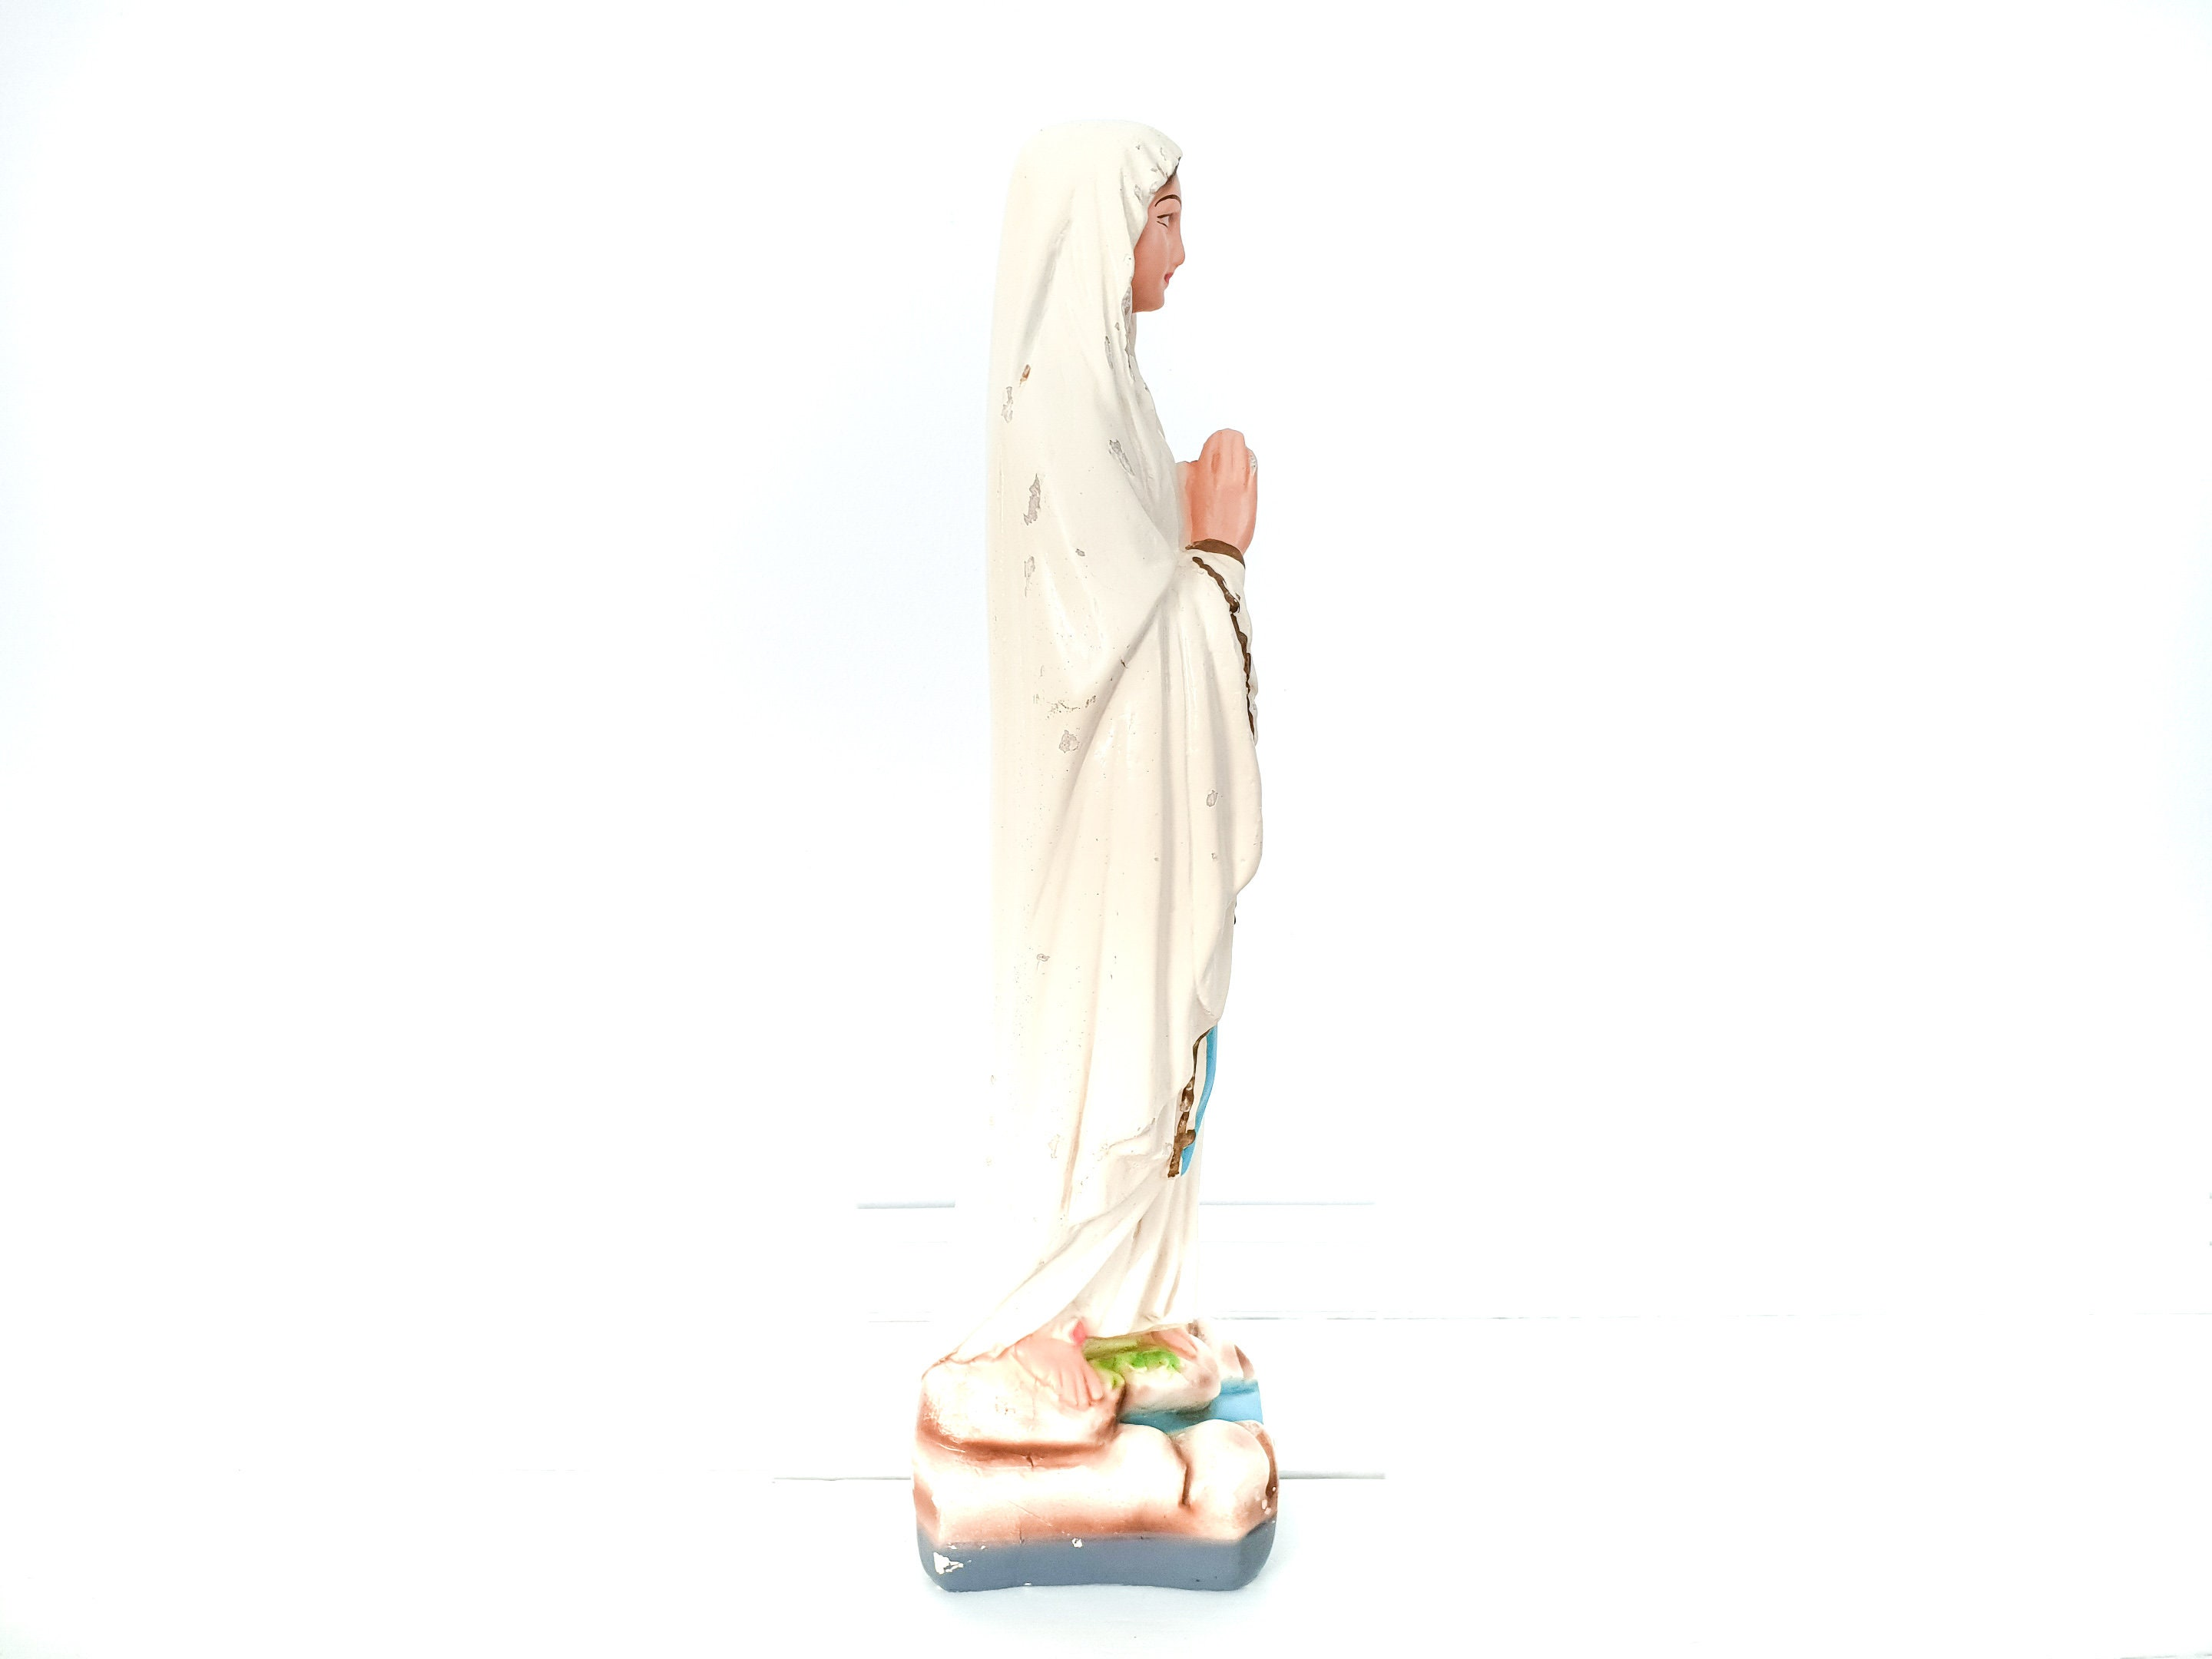 Antique Plaster Virgin Maria Statue • Old Religious